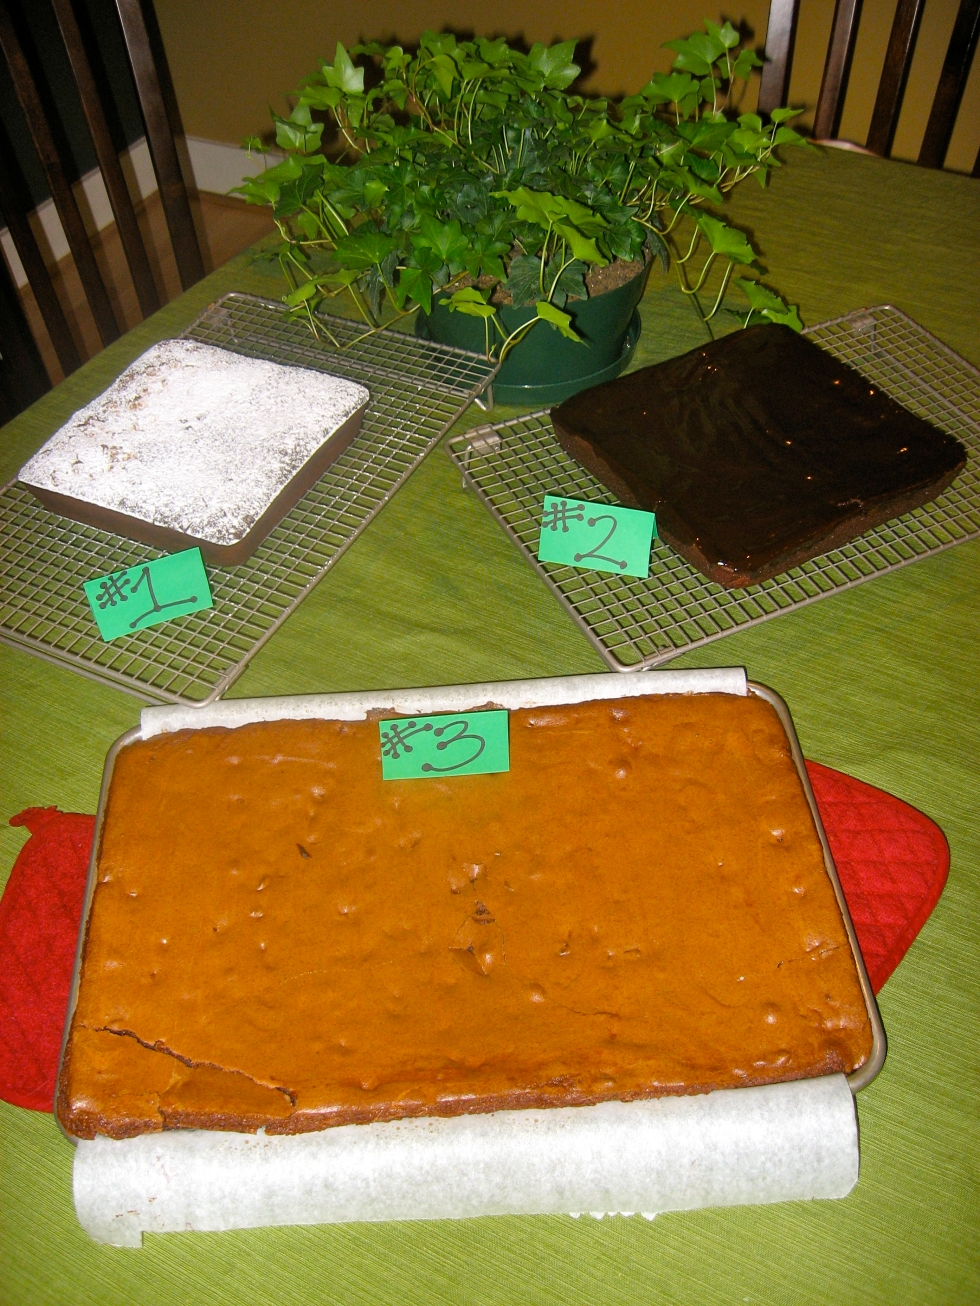 Finished Brownies